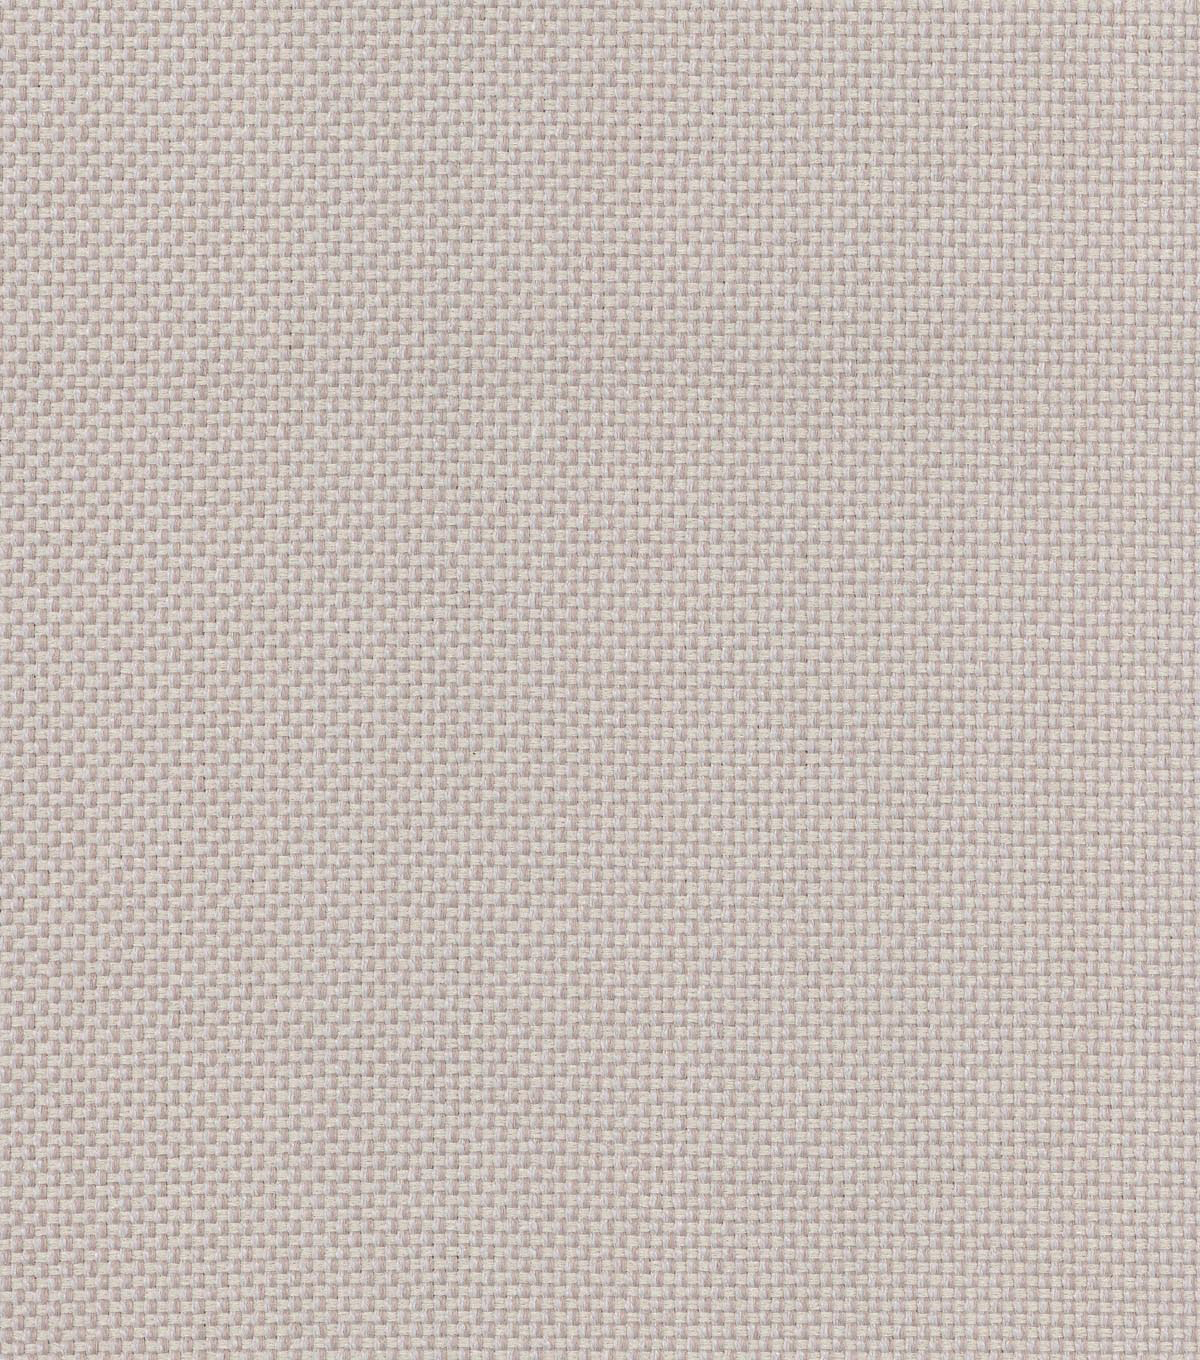 Home Decor 8\u0022x8\u0022 Swatch Fabric-Waverly SoHo Solid Pumice